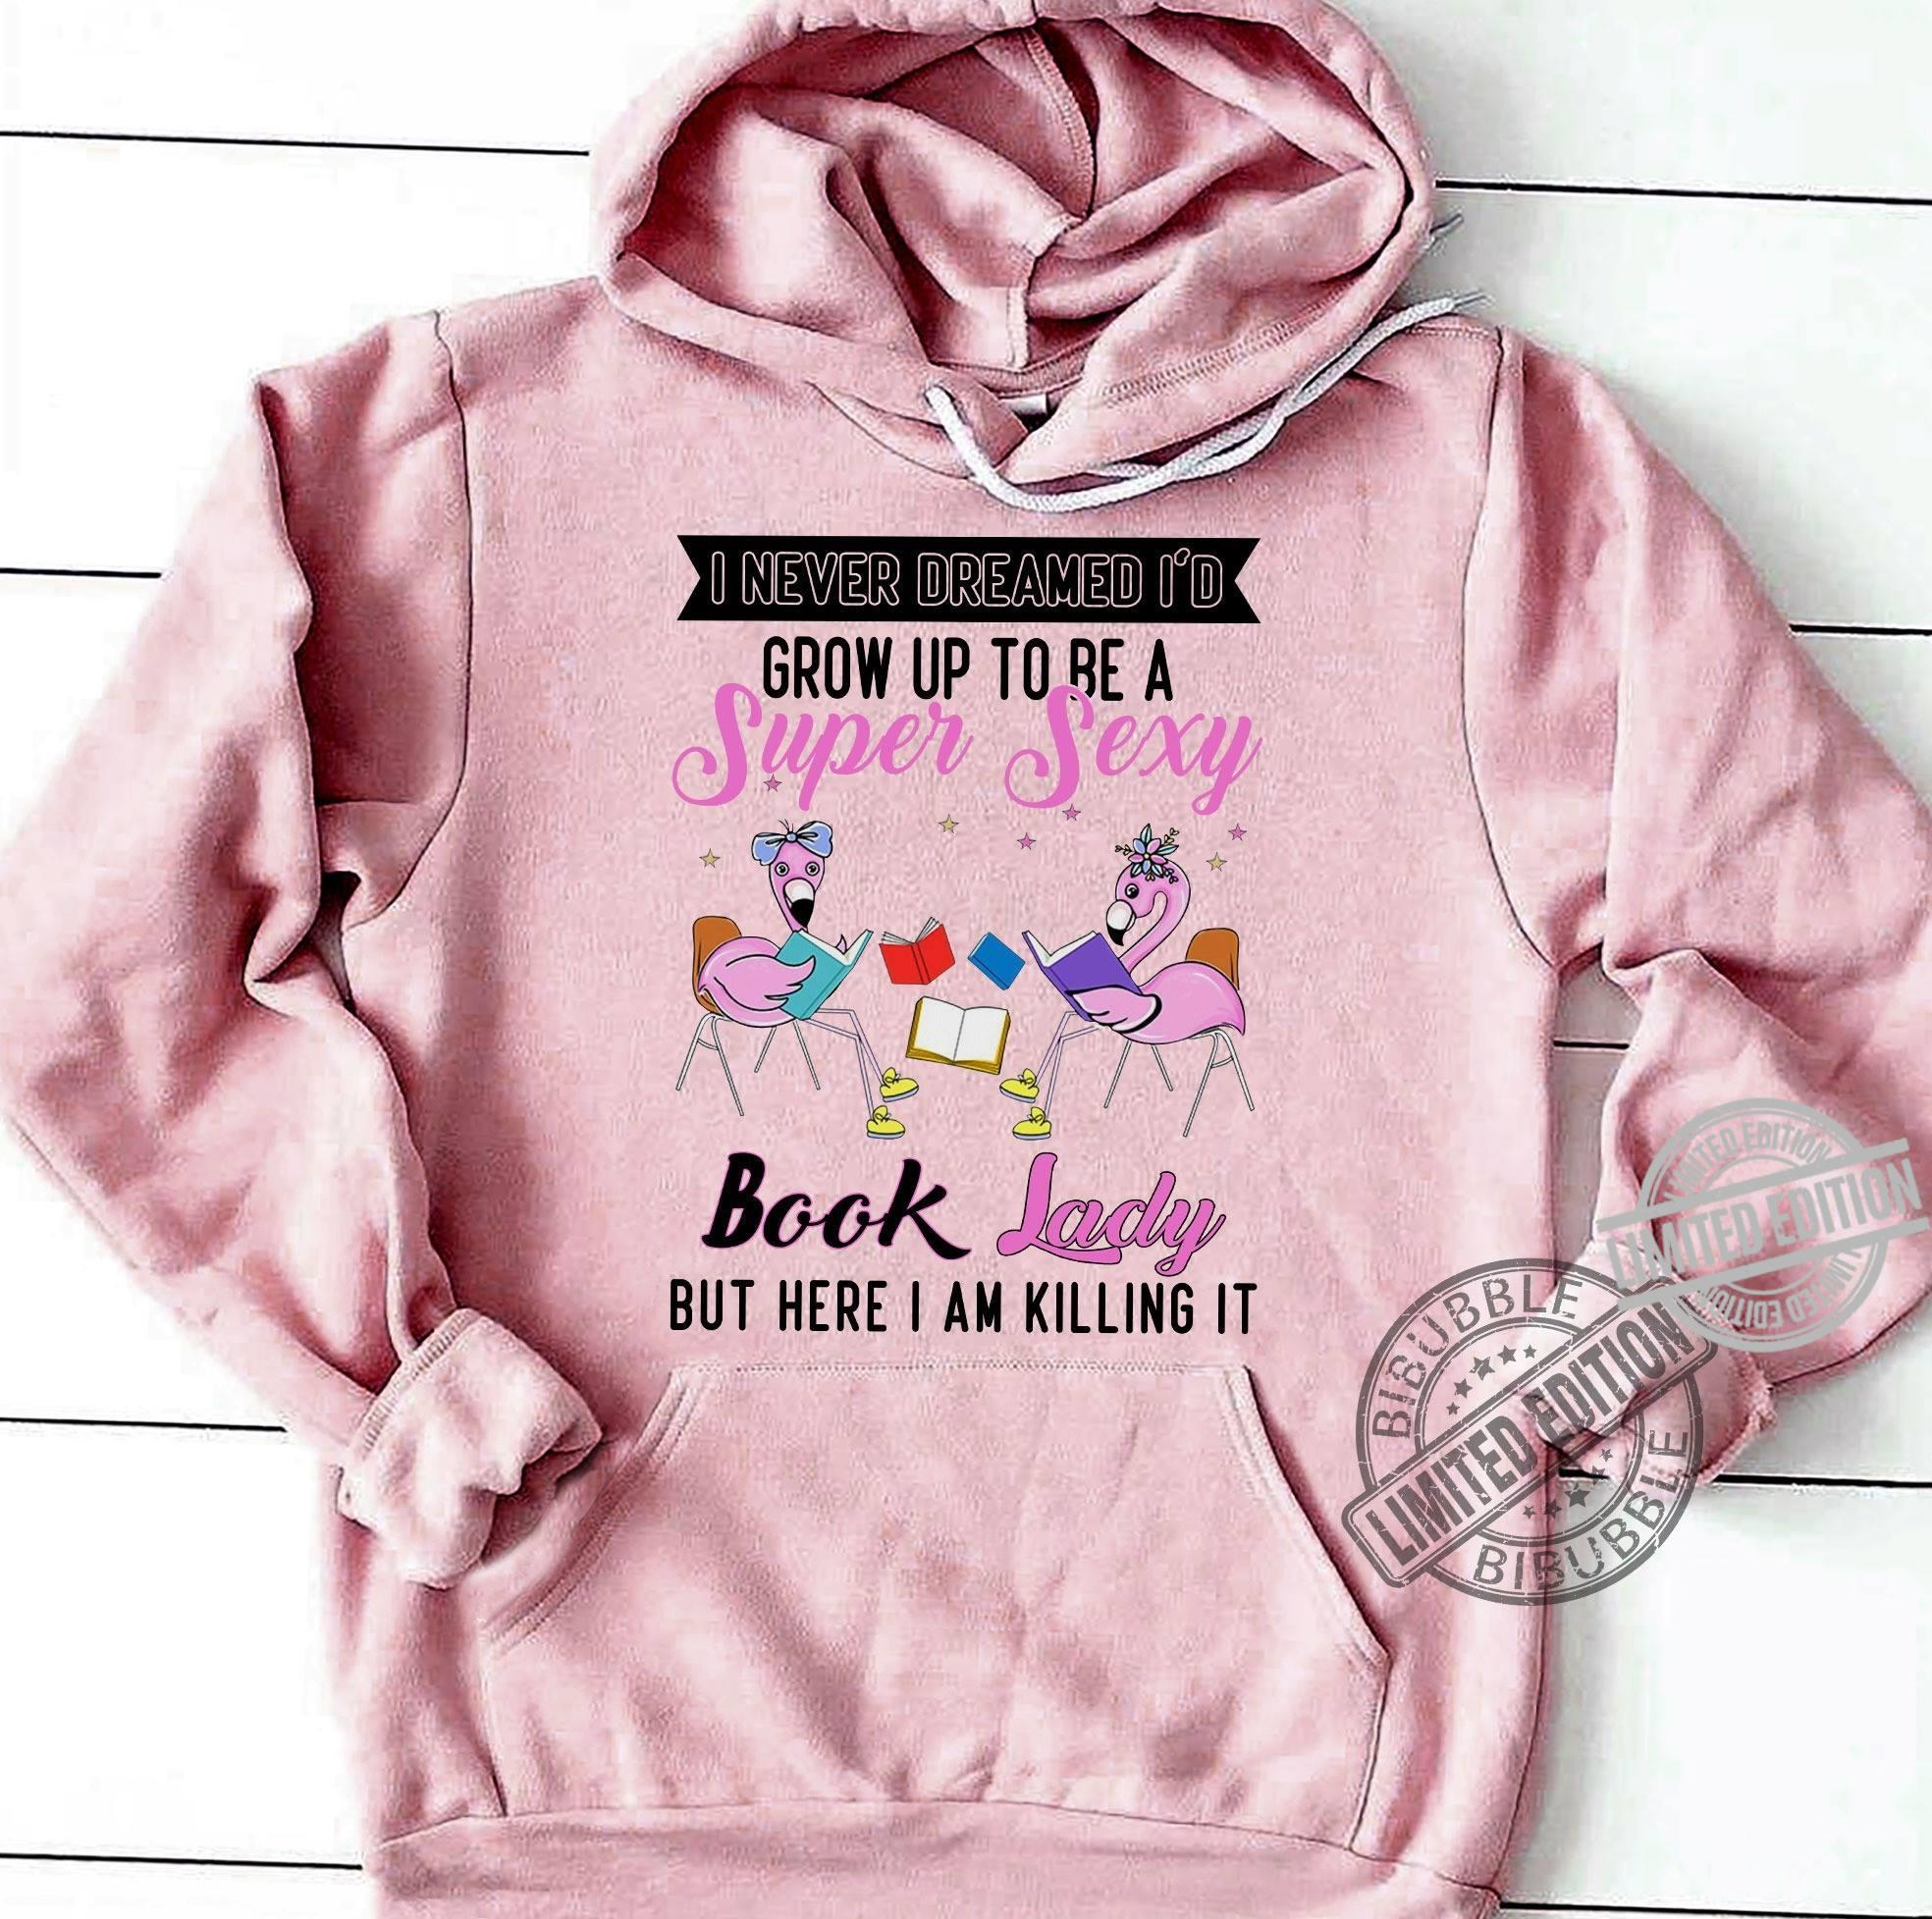 I Never Dreamed I'd Grow Up To Be A Super Sexy Book Lady But Here I Am Killing It Shirt